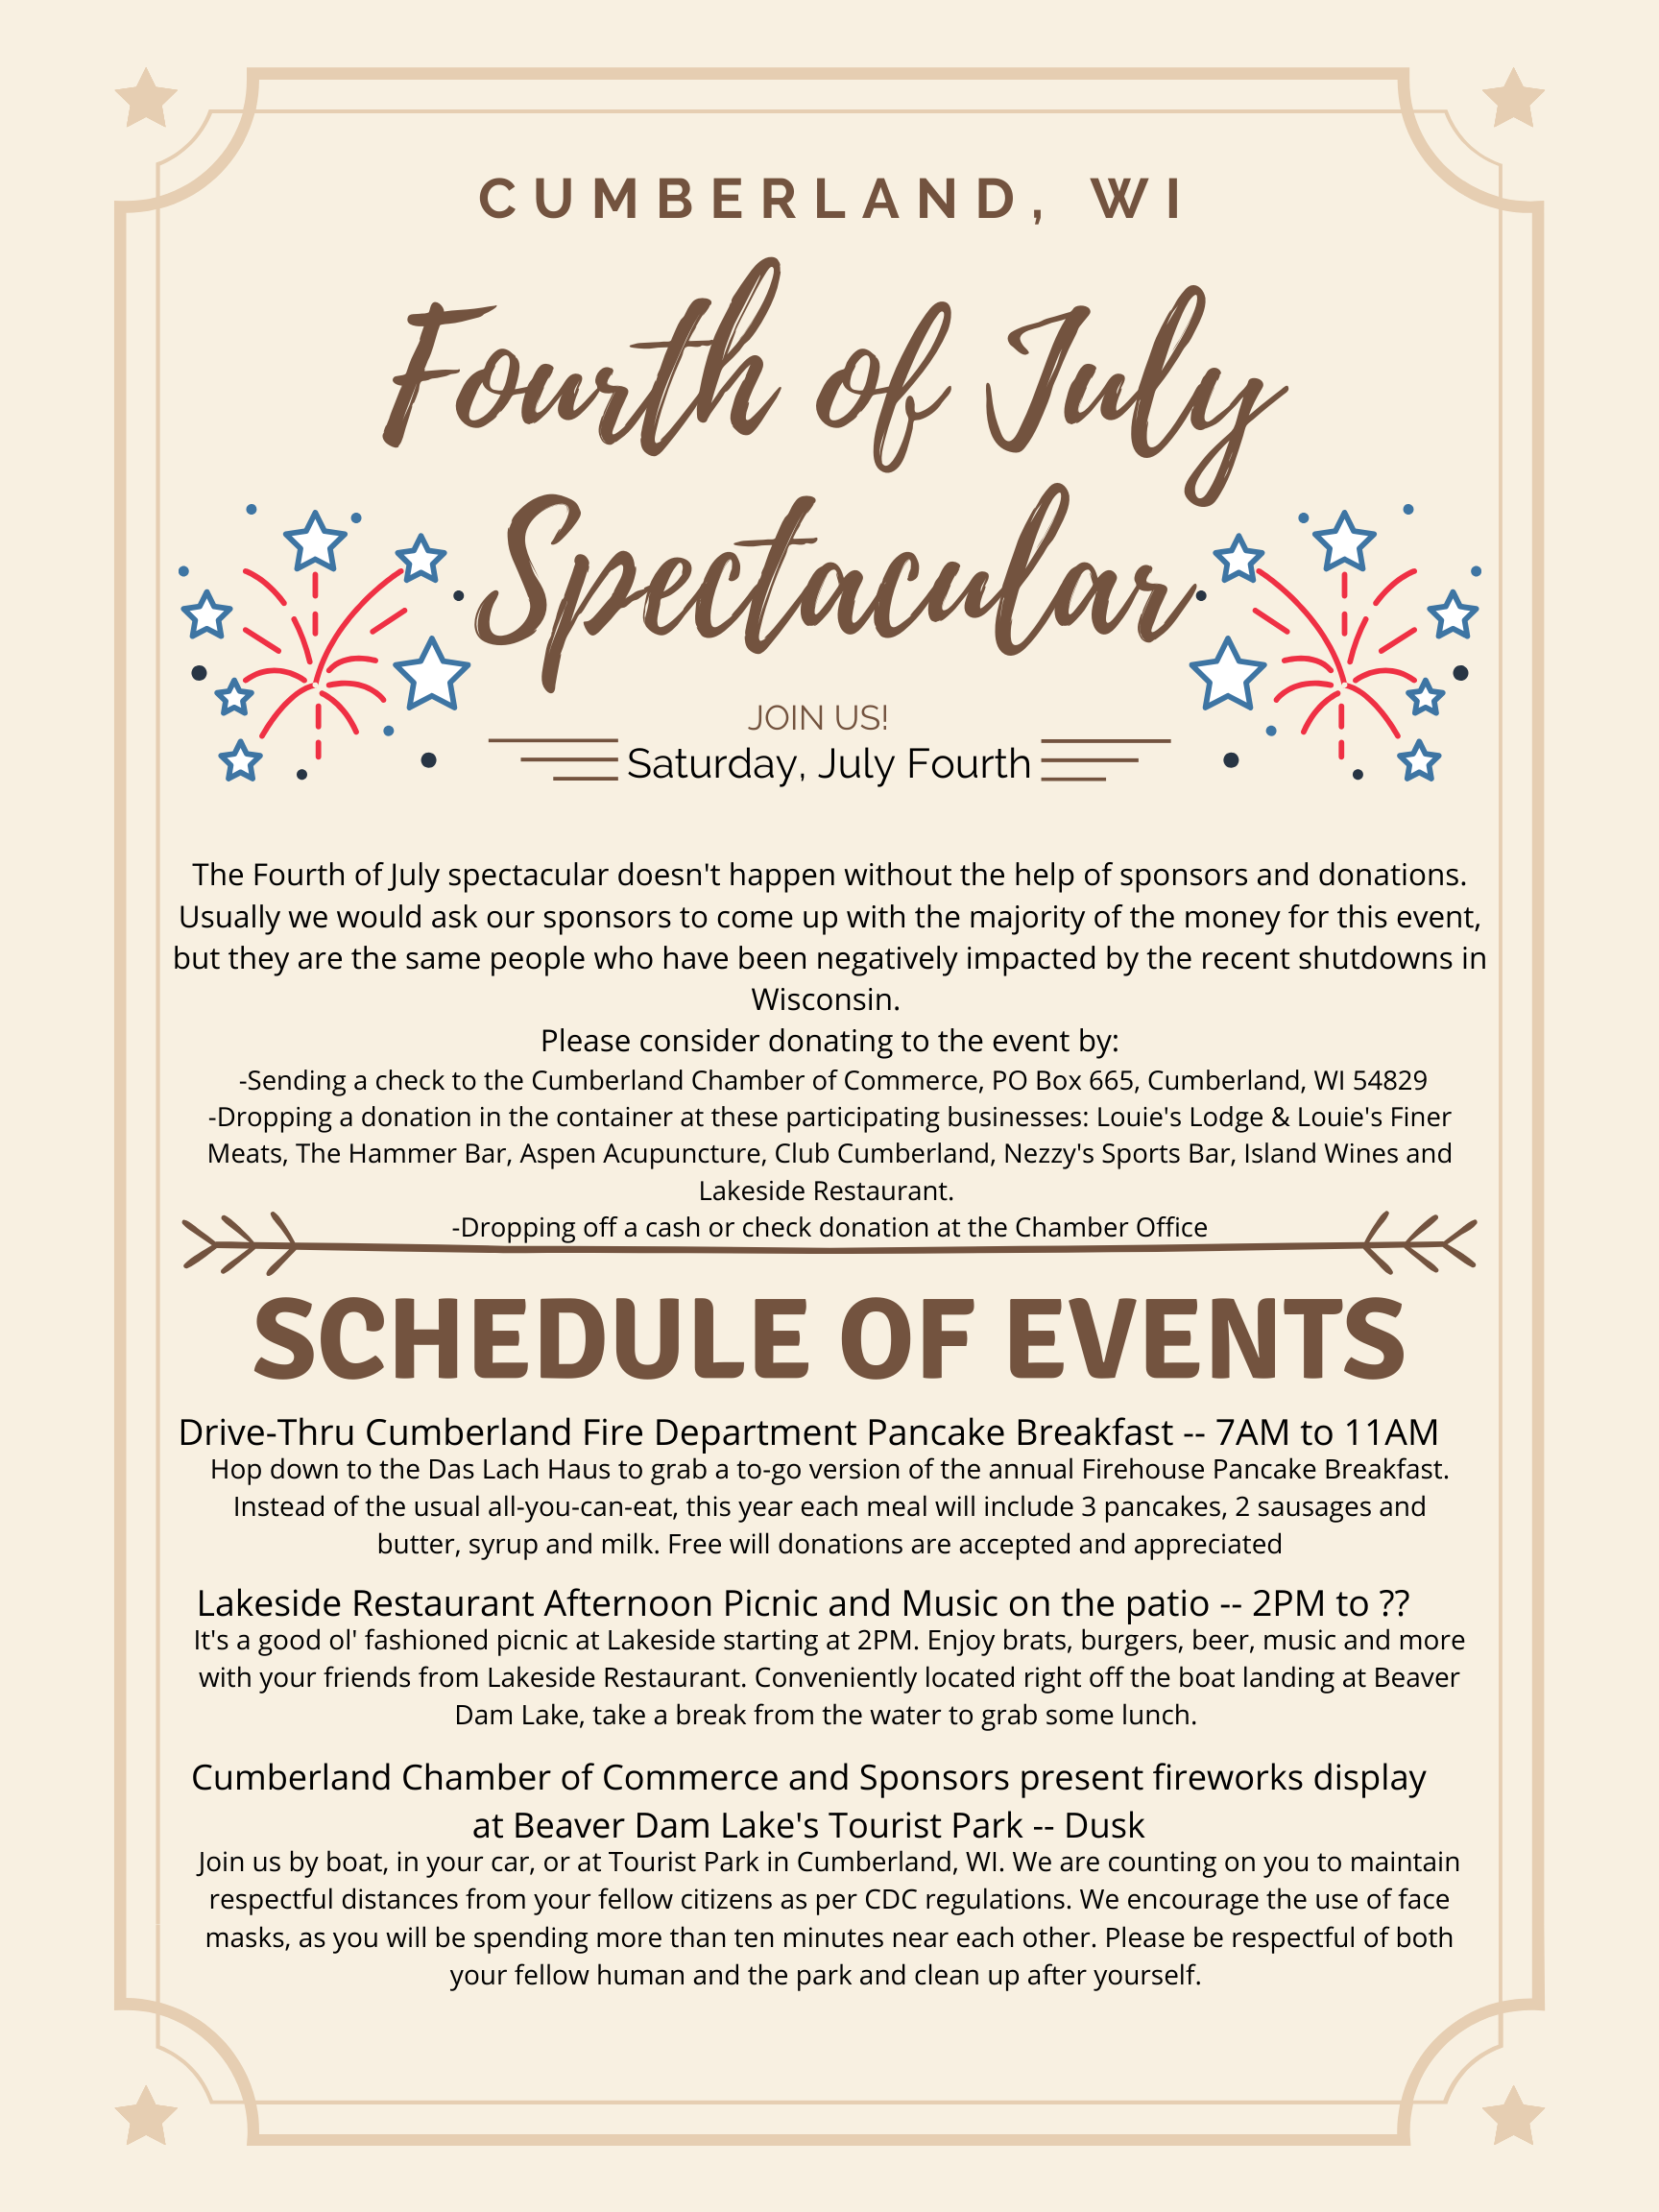 Fourth of July Spectacular schedule of events and donation request poster